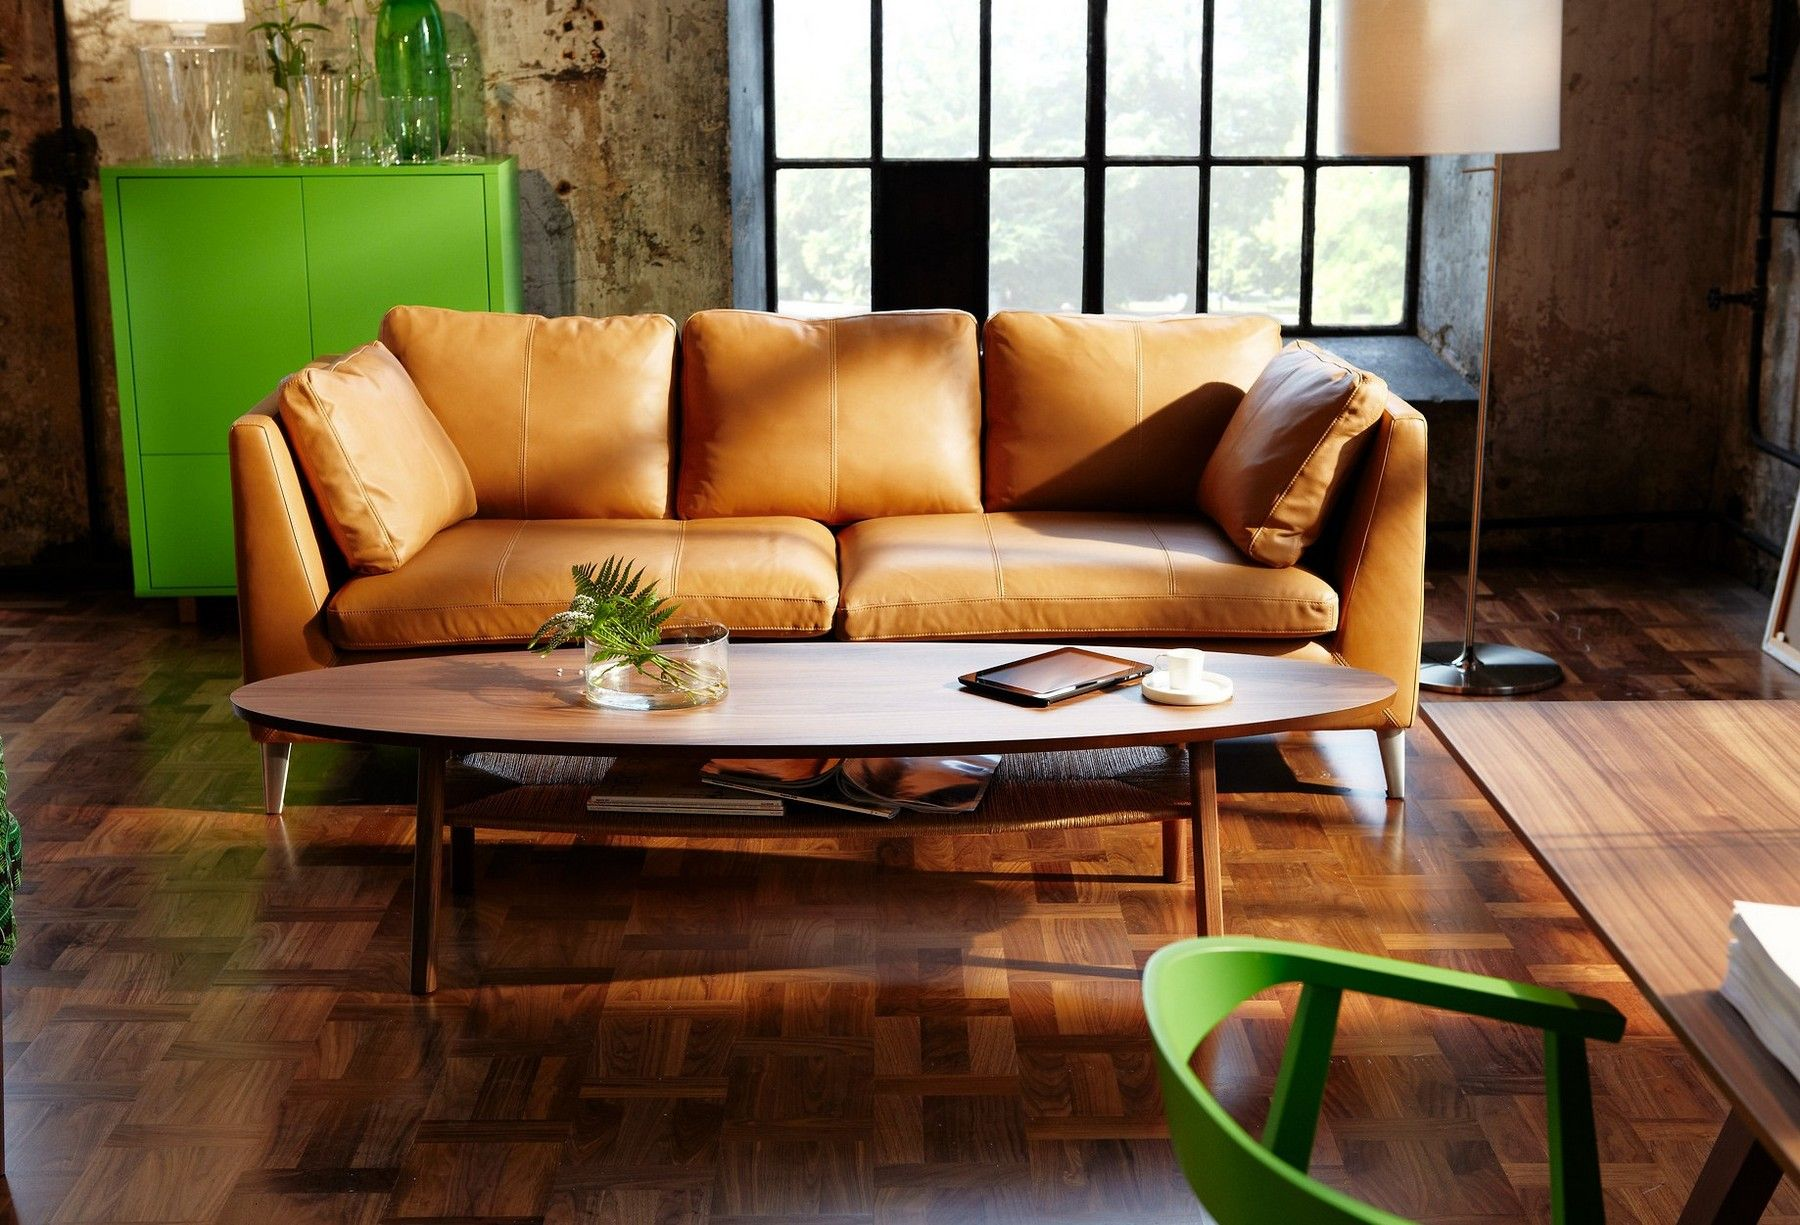 Furniture IKEA Surfboard Table With Light Brown Leather Sofa Set